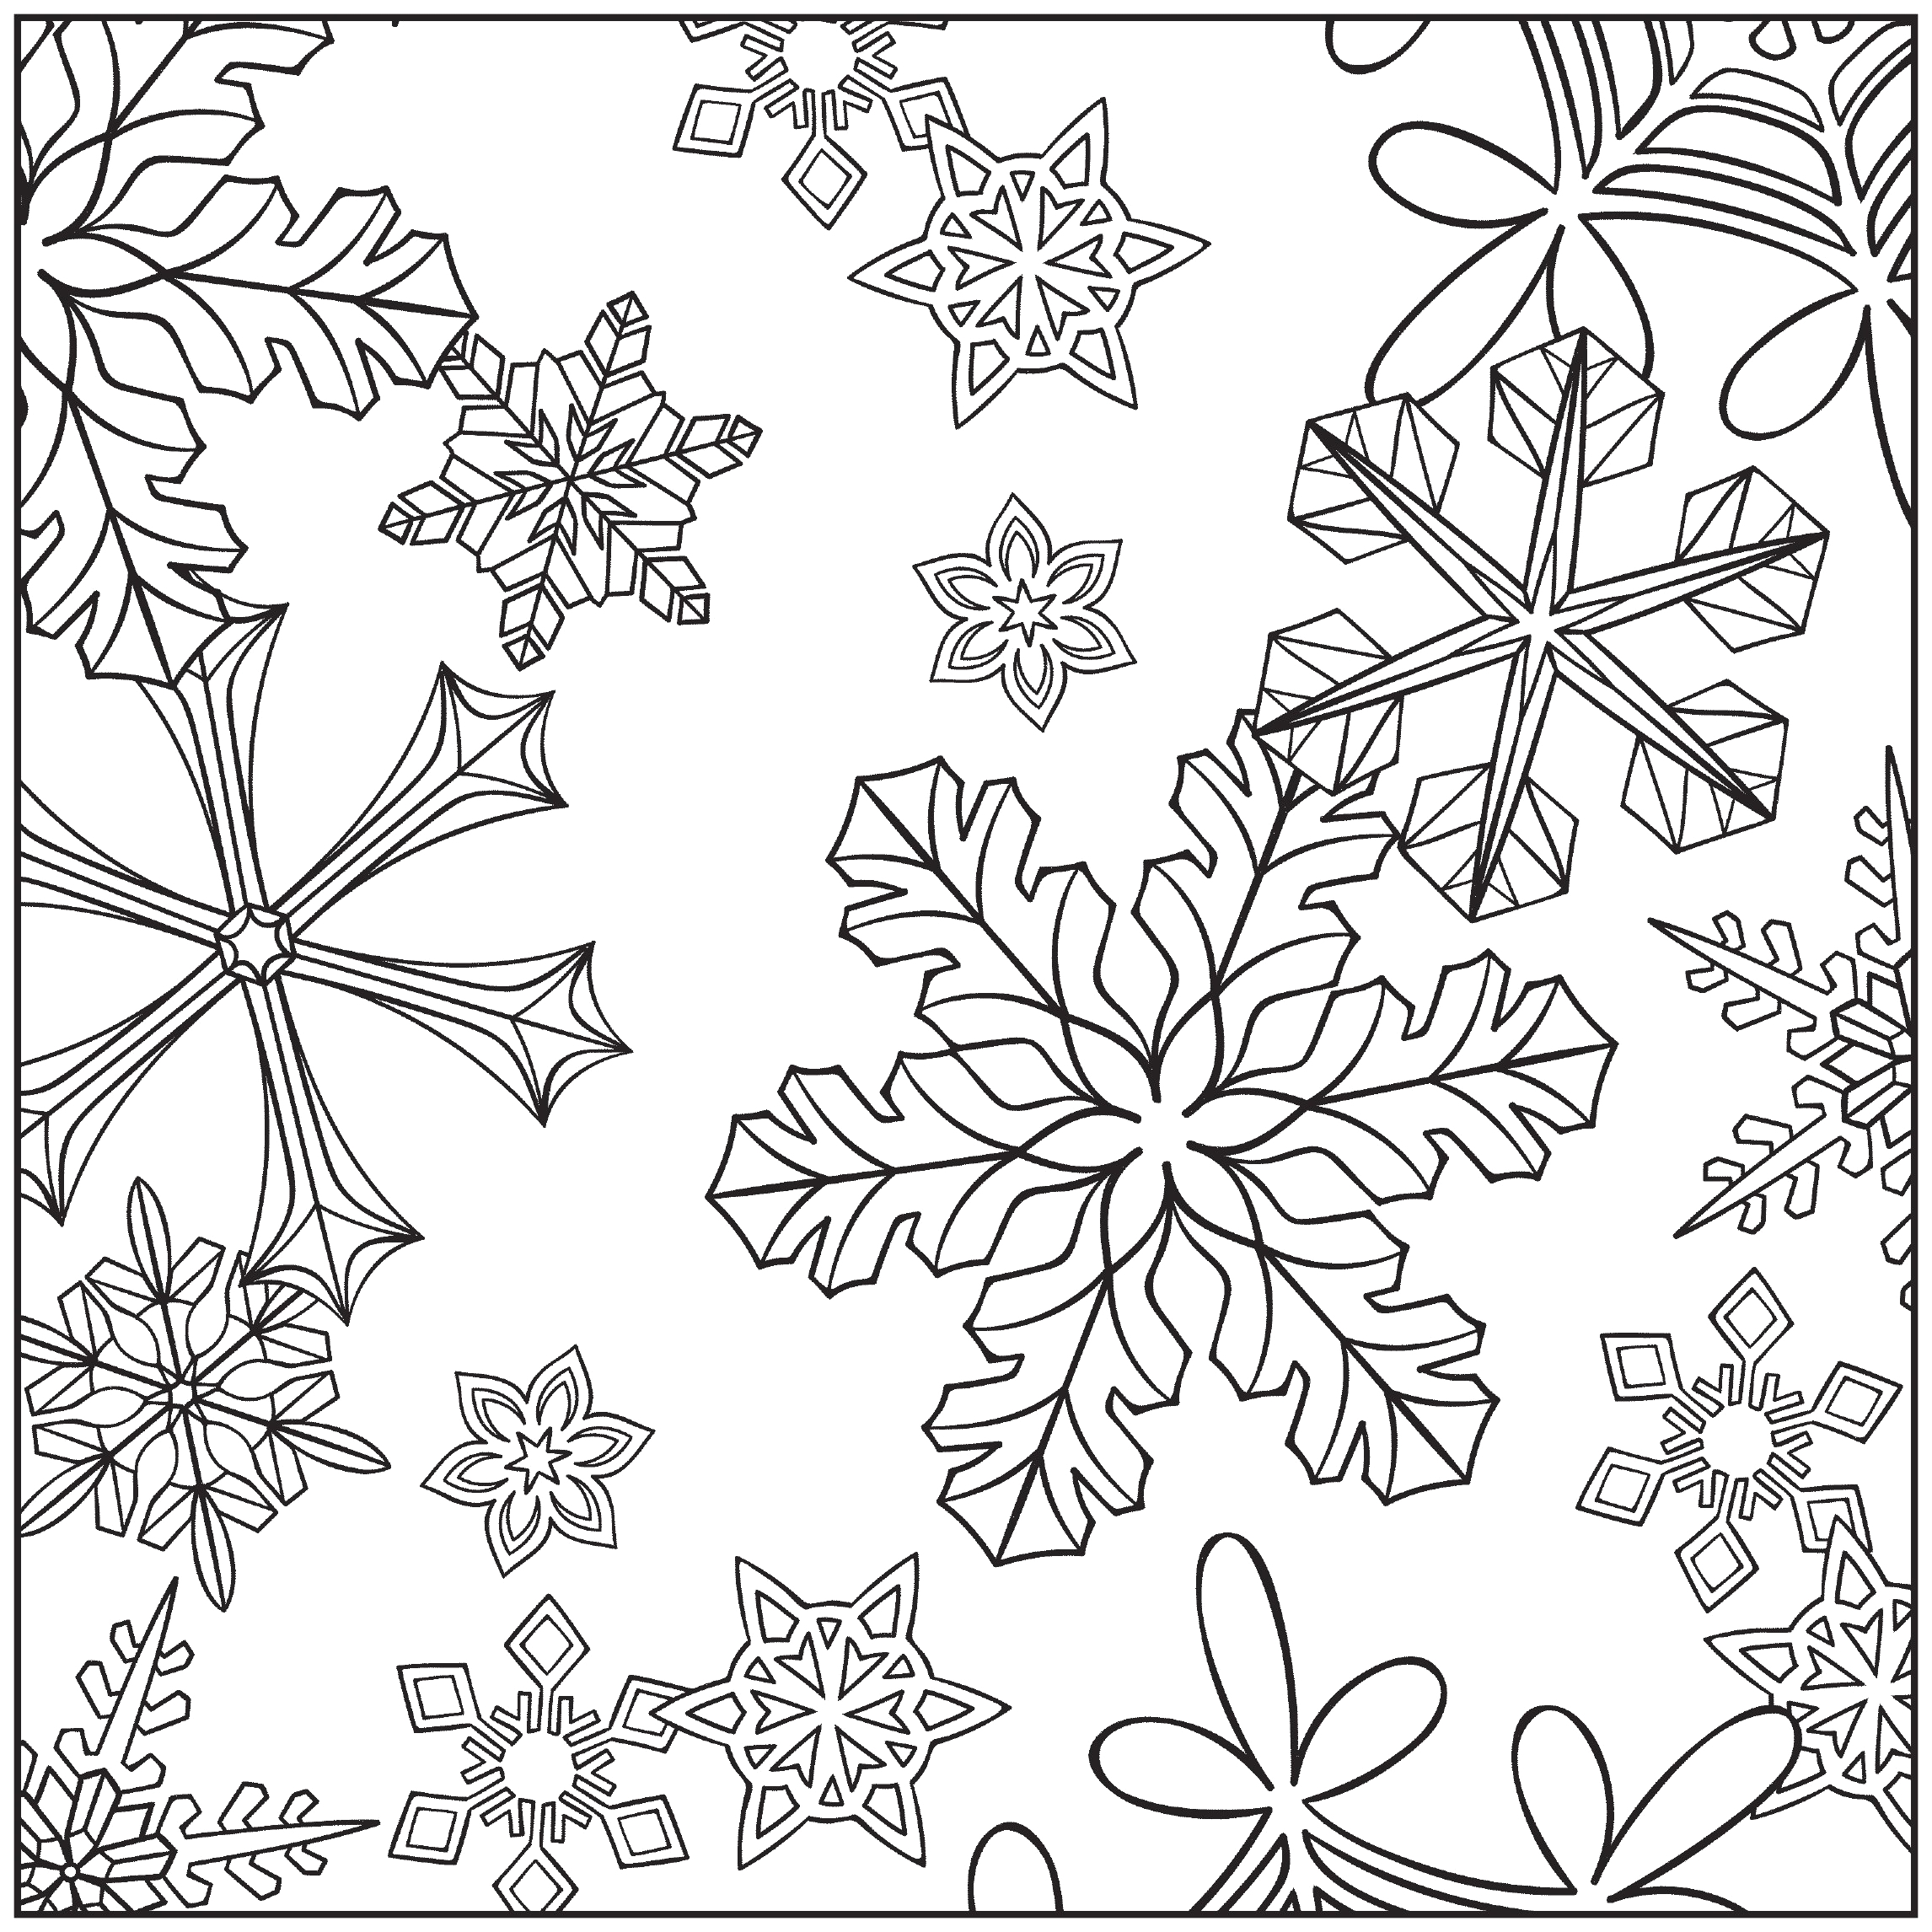 Free Printable Winter Coloring Pages for Kids Winter Coloring Pages for Adults Best Coloring Pages for